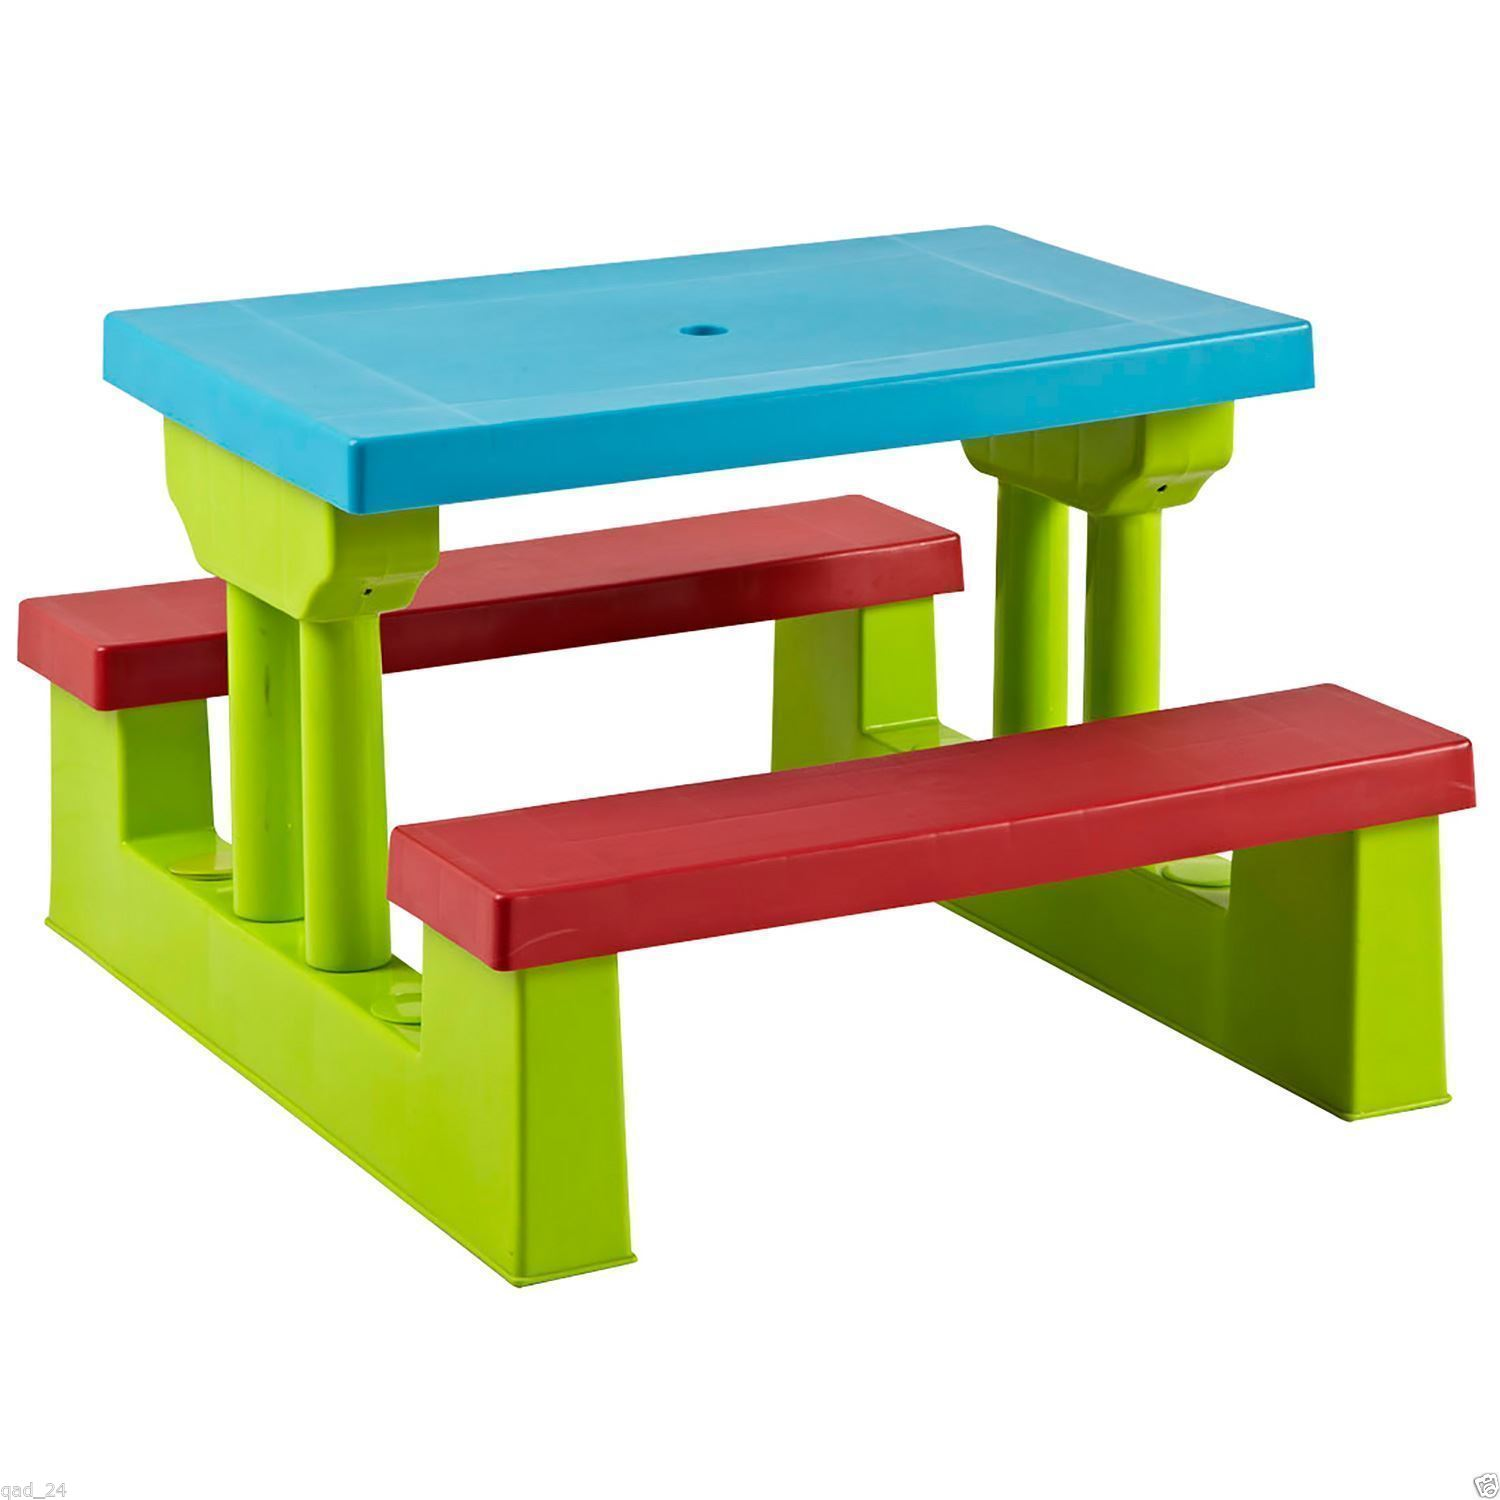 Kids Childrens Picnic Bench Table Set Outdoor Furniture 163 29 99 Oypla Stocking The Very